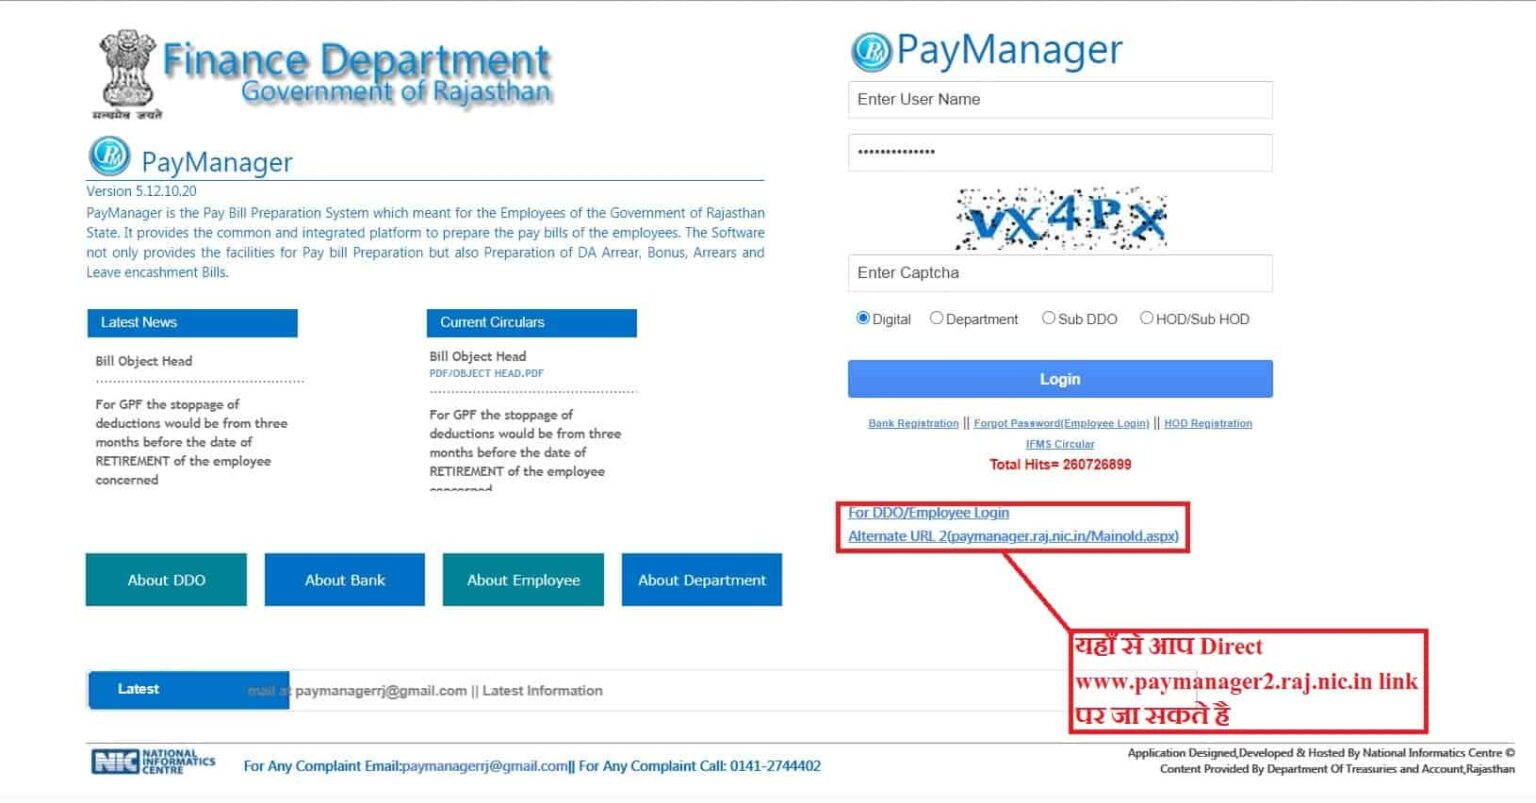 Paymanager Alternate Employee/DDO Login page